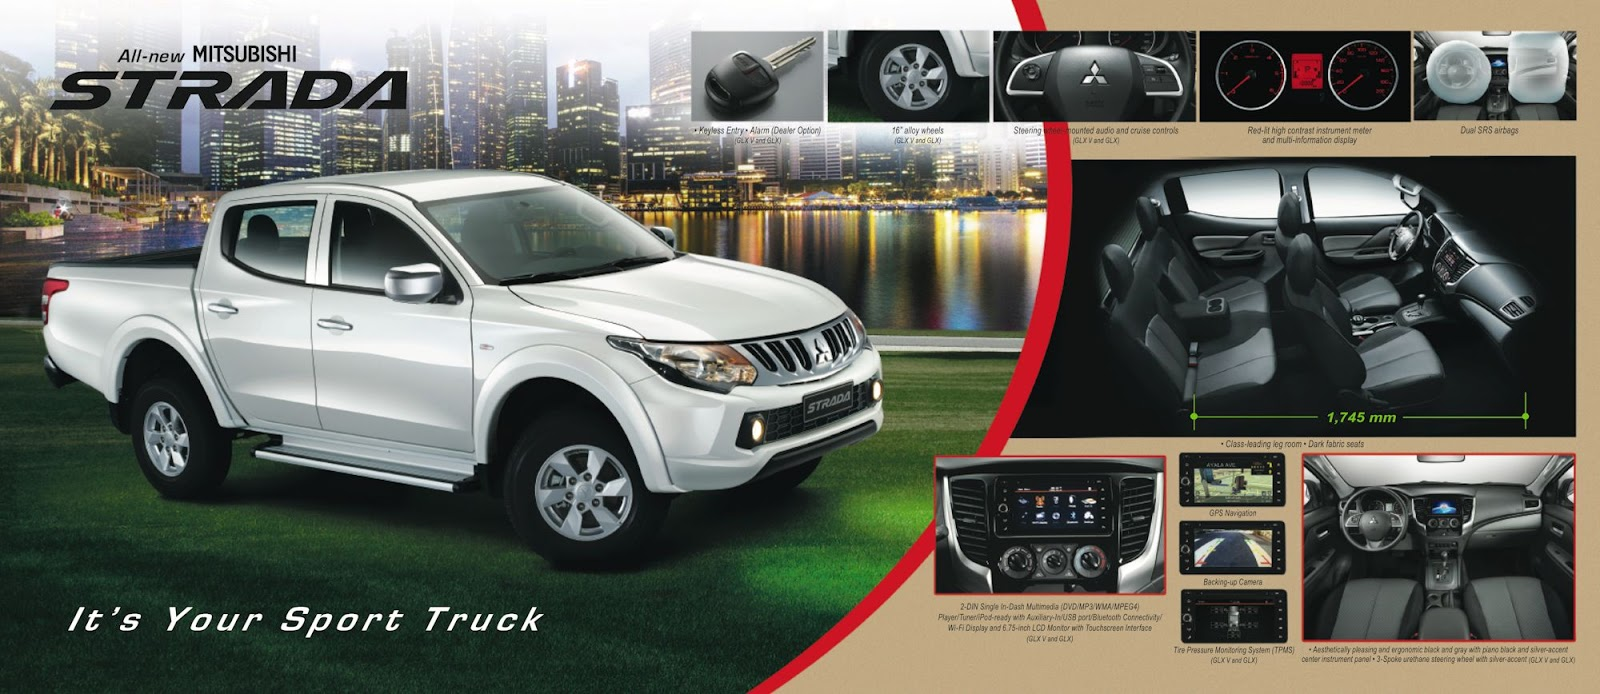 It will be exported to over 150 countries worldwide and is manufactured solely at mitsubishi motors thailand